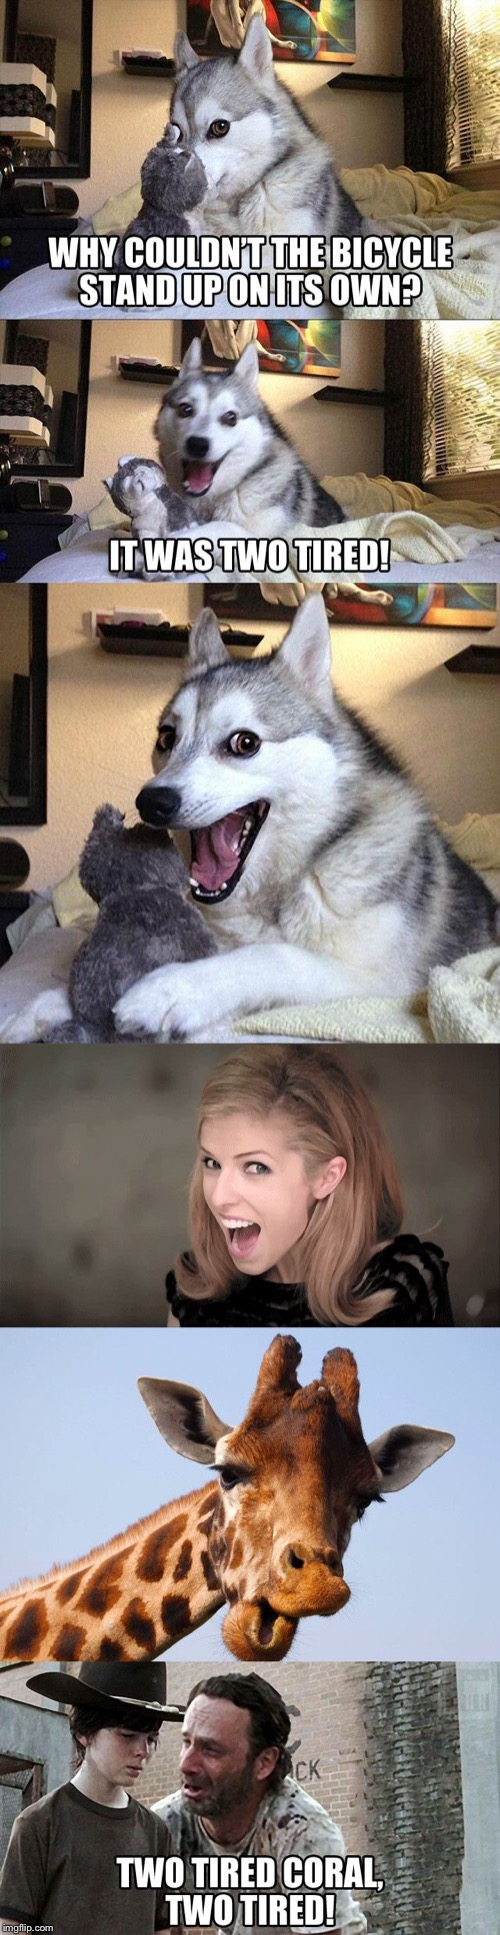 When you tell a bad joke, but your homies back you up | . | image tagged in memes,bad pun dog,bad pun anna kendrick,giraffe,the walking dead coral | made w/ Imgflip meme maker